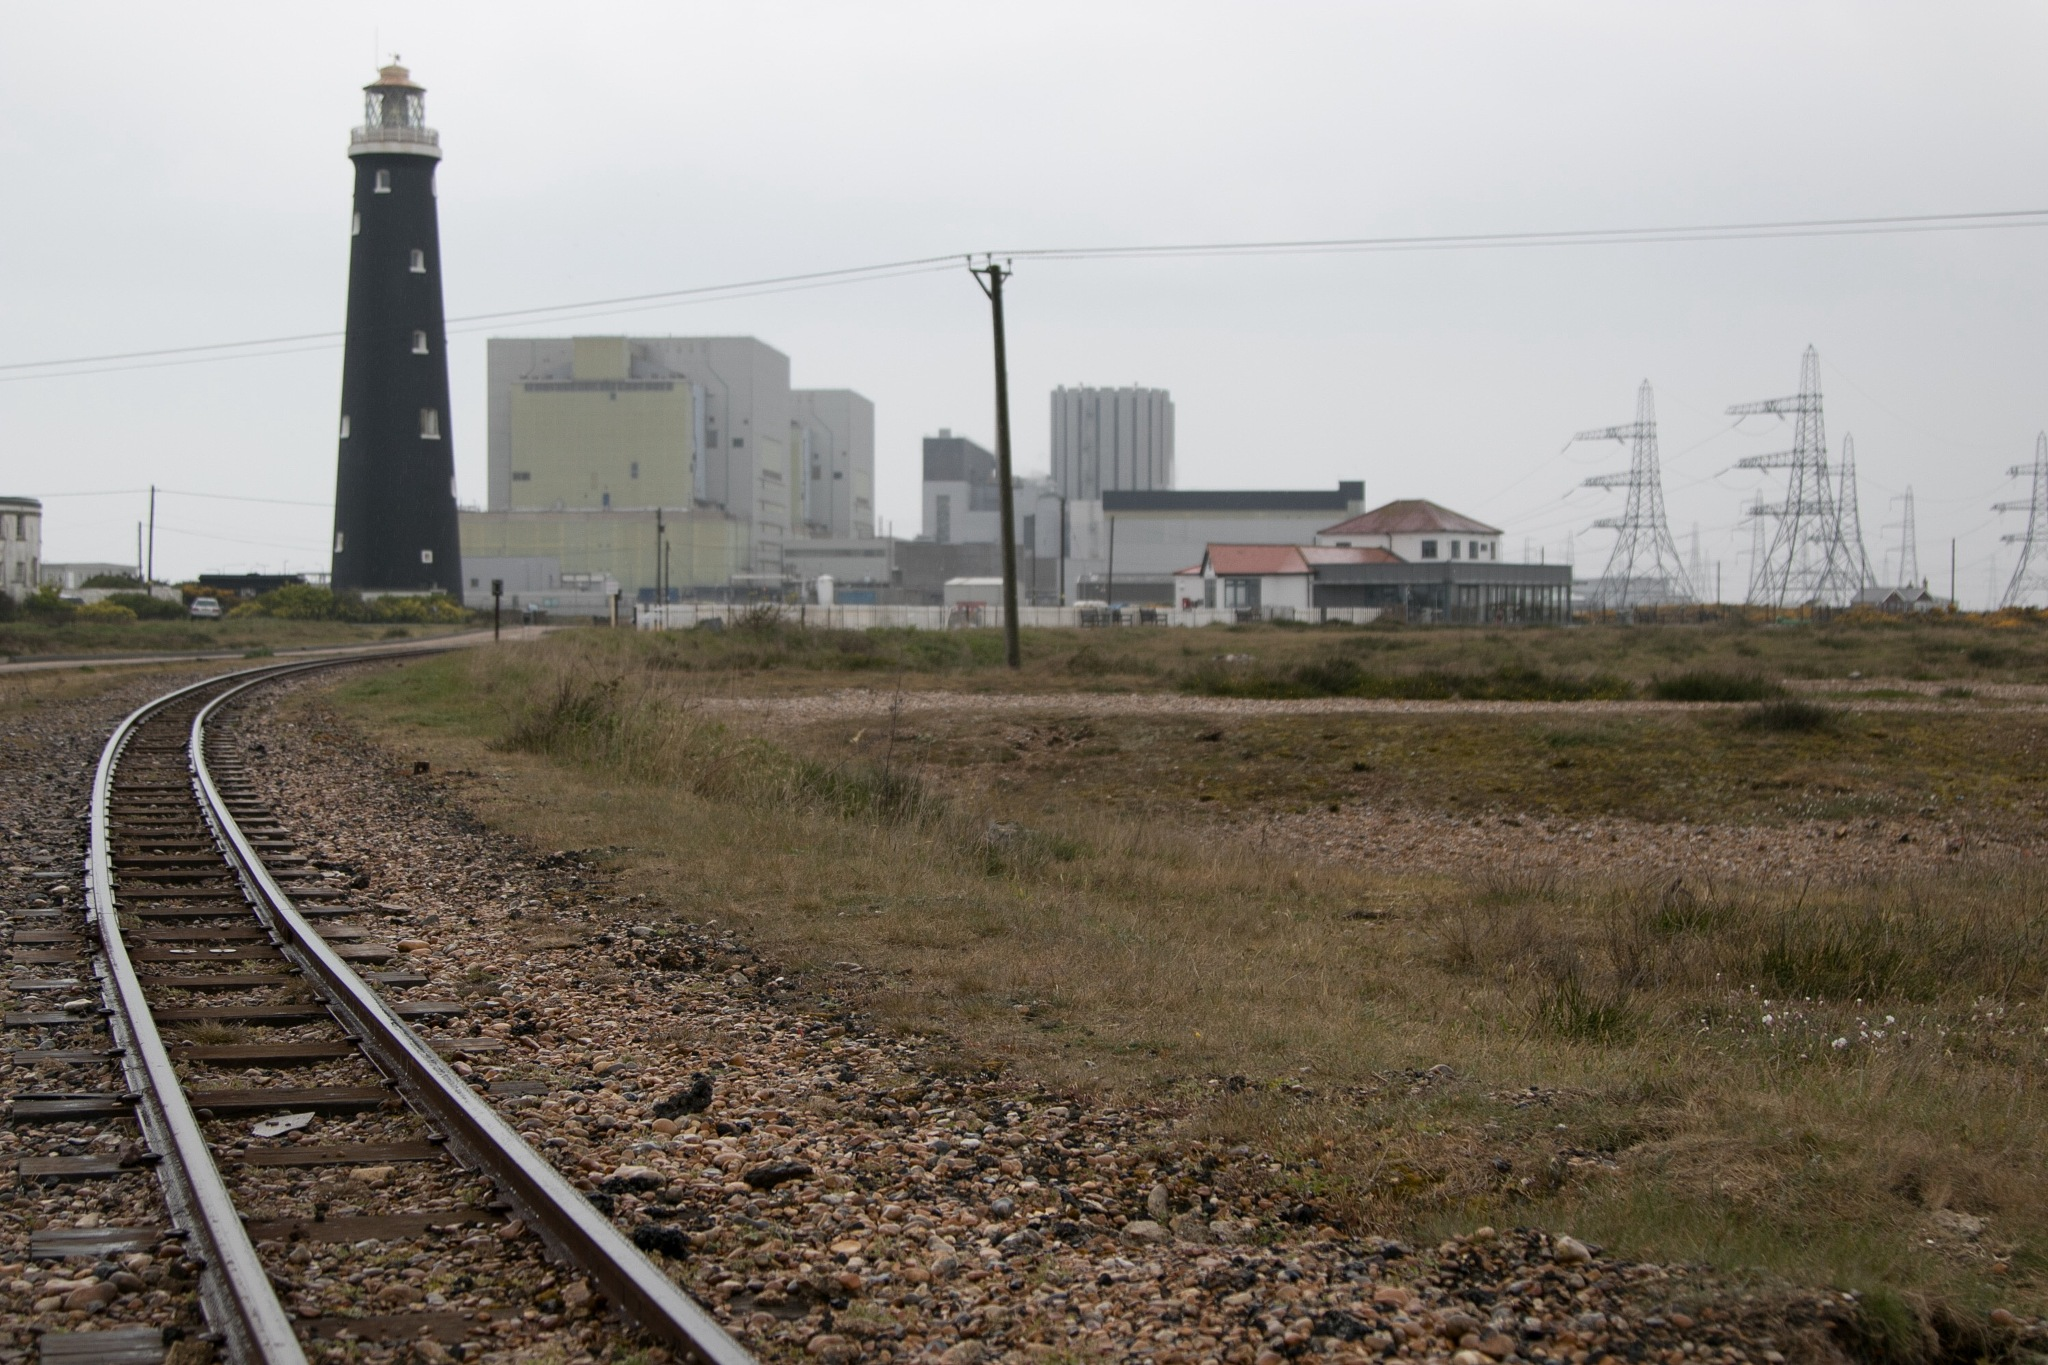 Dungeness UK by Jdubr2